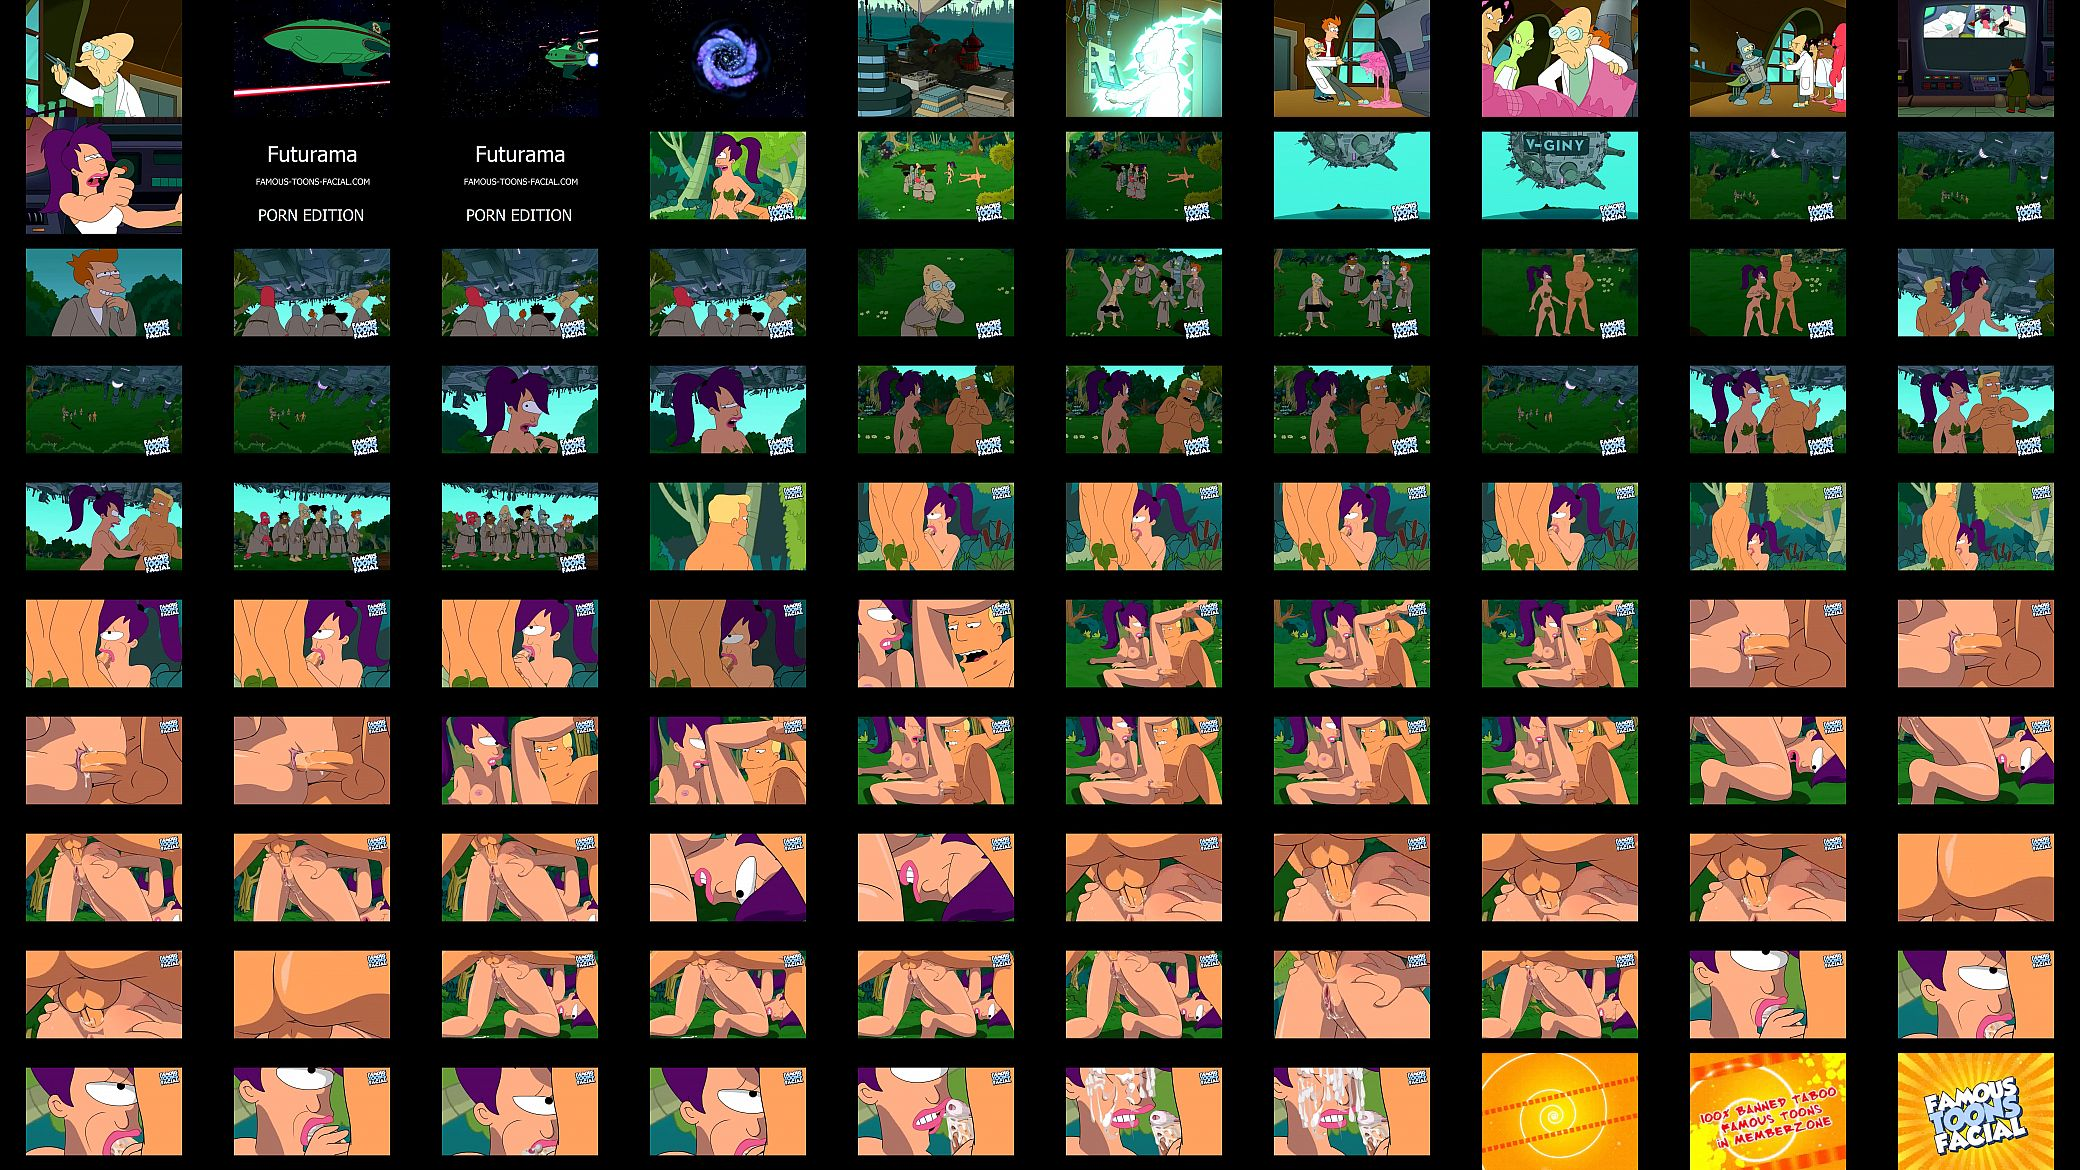 Futurama Hardcore Porn futurama-porn-video - xvideos